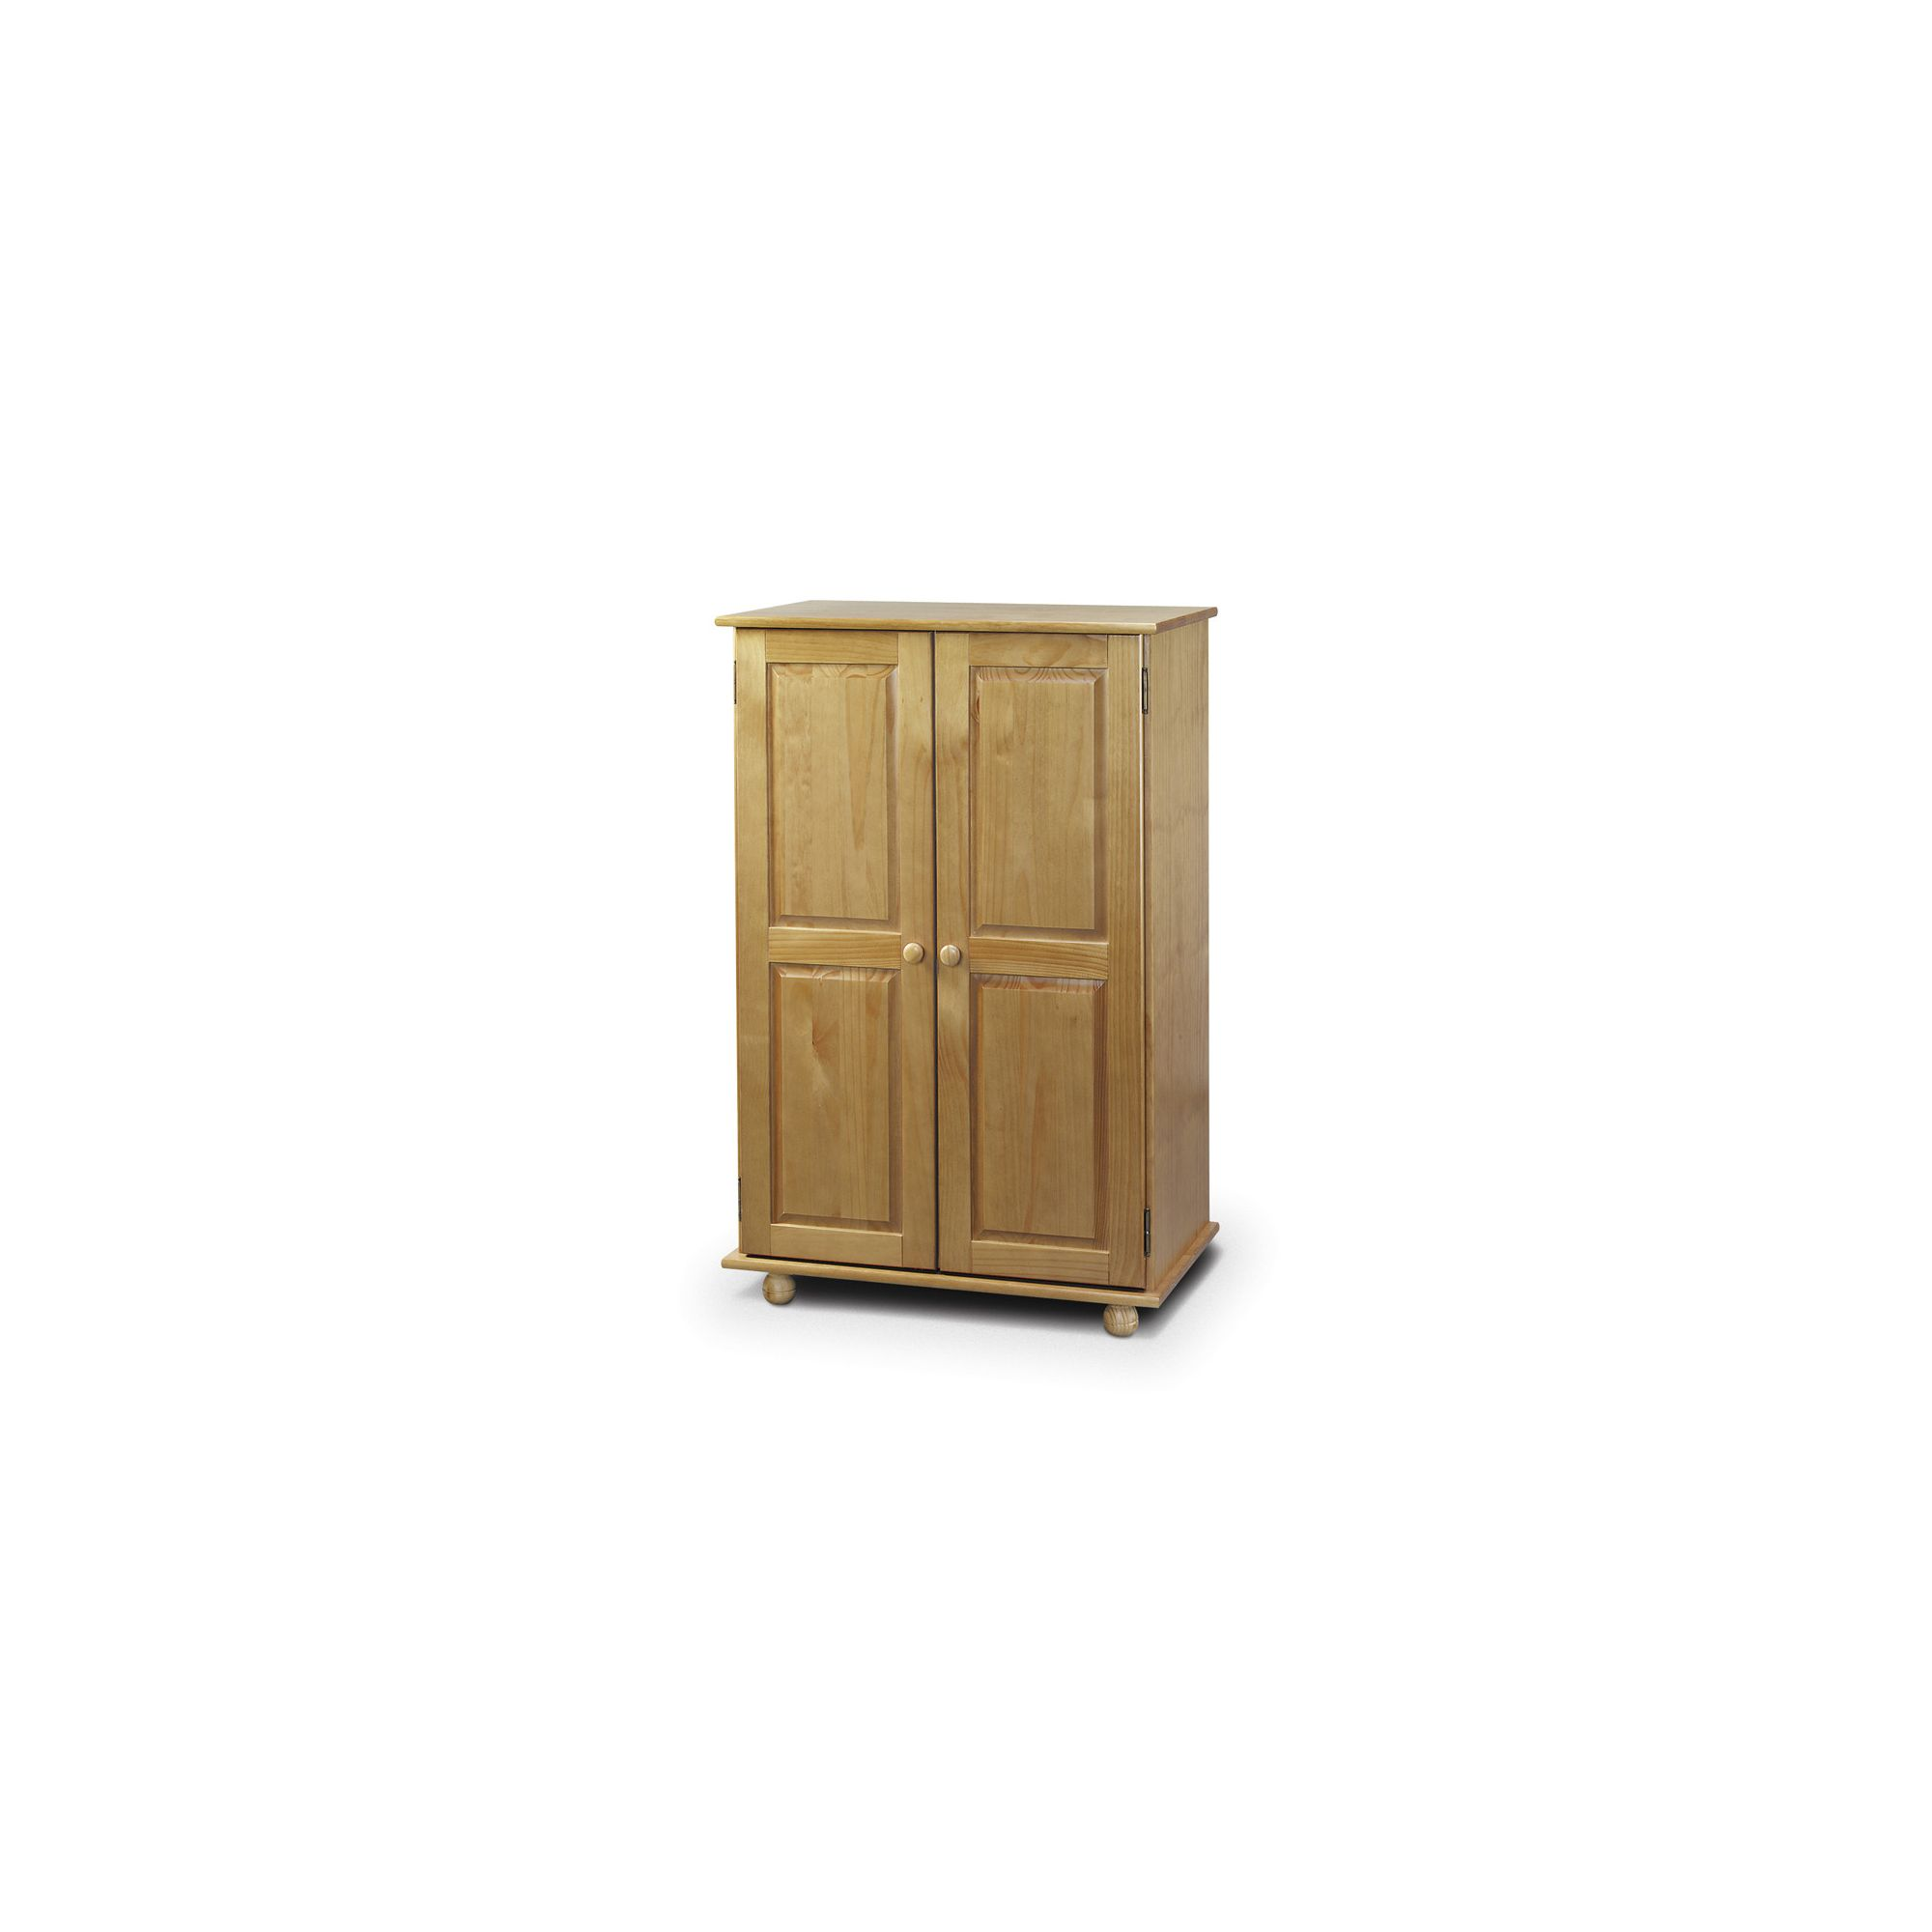 Julian Bowen Pickwick Short All Hanging Wardrobes in Solid Pine at Tesco Direct